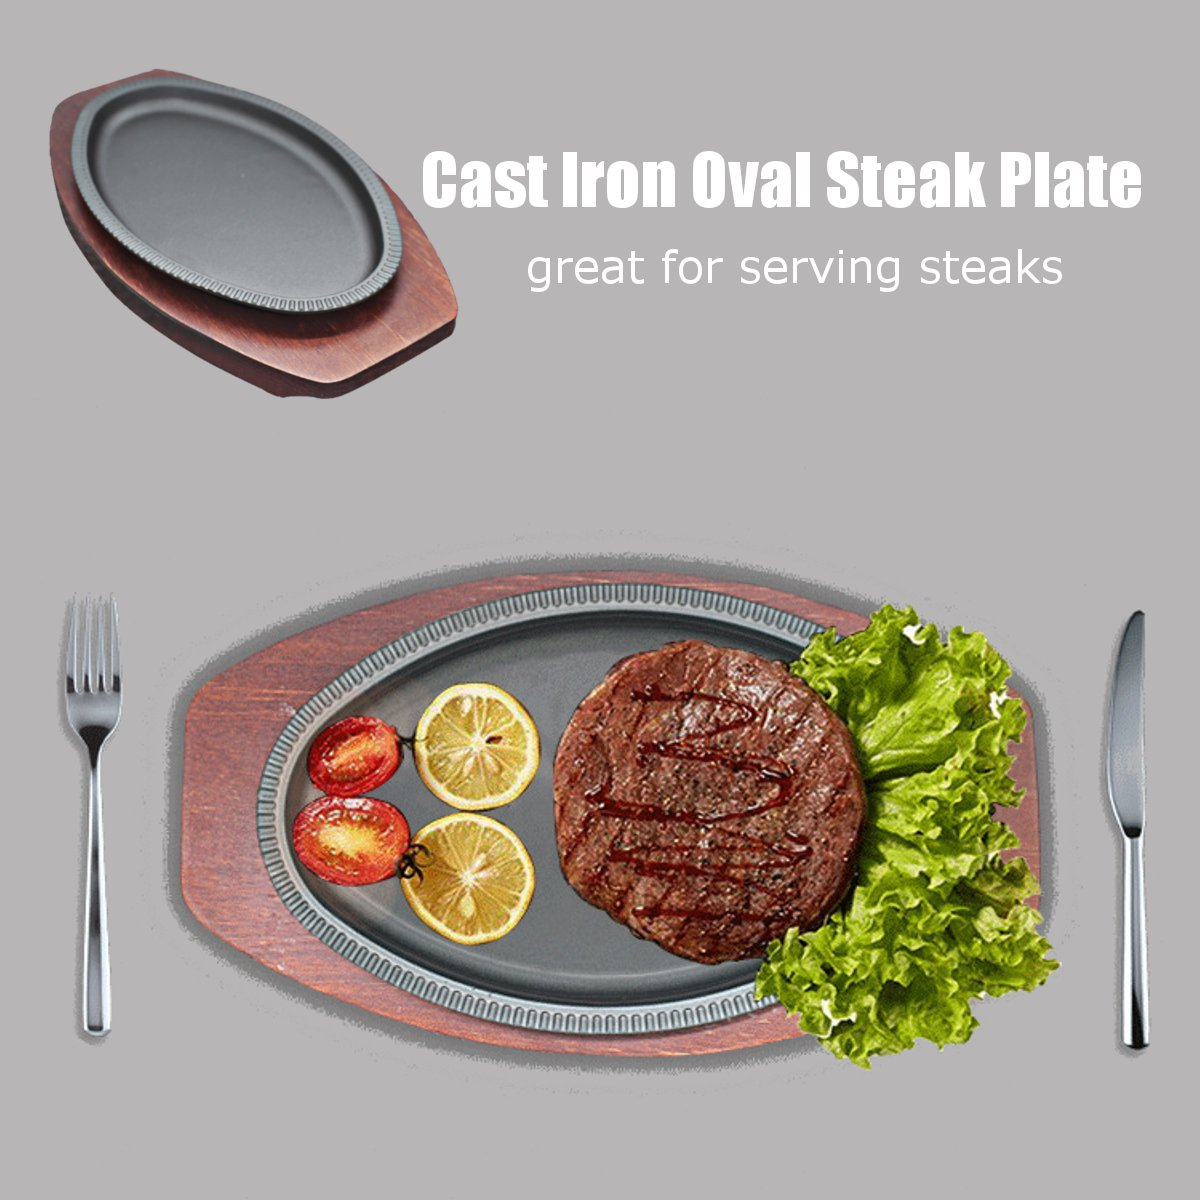 Cast Iron Oval Steak Plate Sizzling Meat Barbecue Platter BBQ Grill Pan Wooden Tray Base 22x13cm Kitchen Cooking Tools Cookware